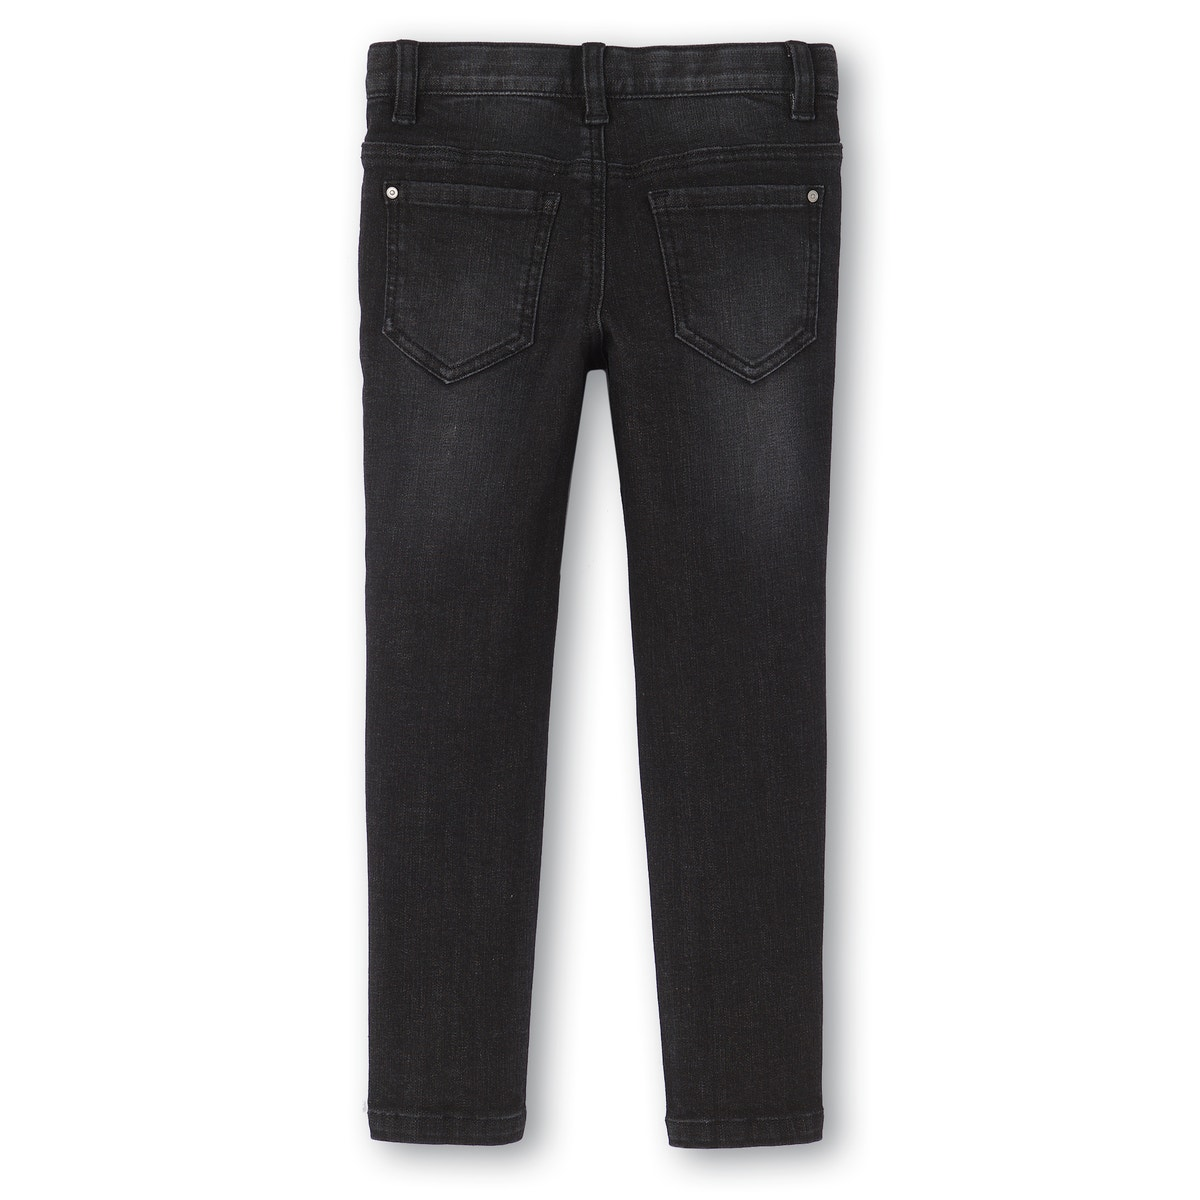 La-Redoute-Collections-Skinny-Jeans-312-Years